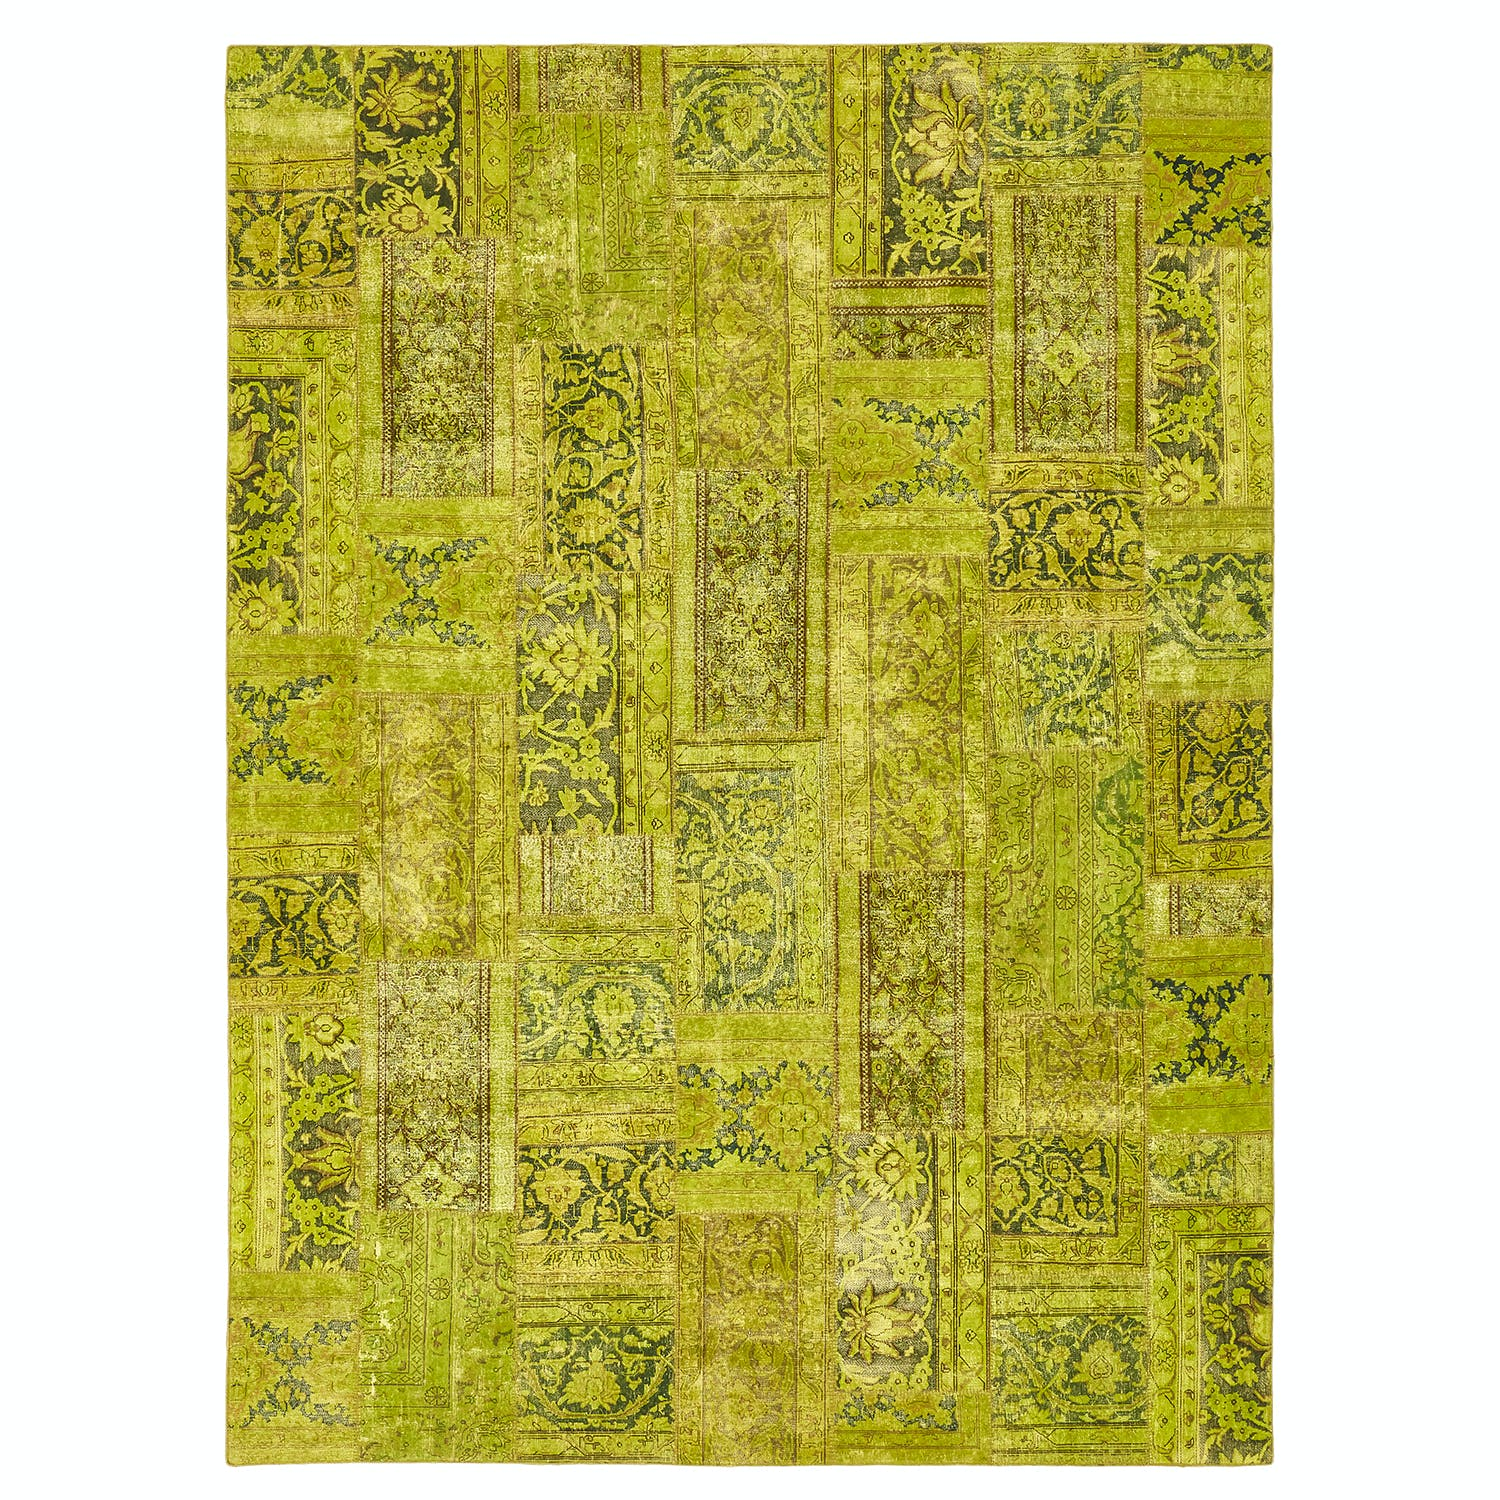 Color Reform Patchwork Overdyed Rug - 9'x12'2""